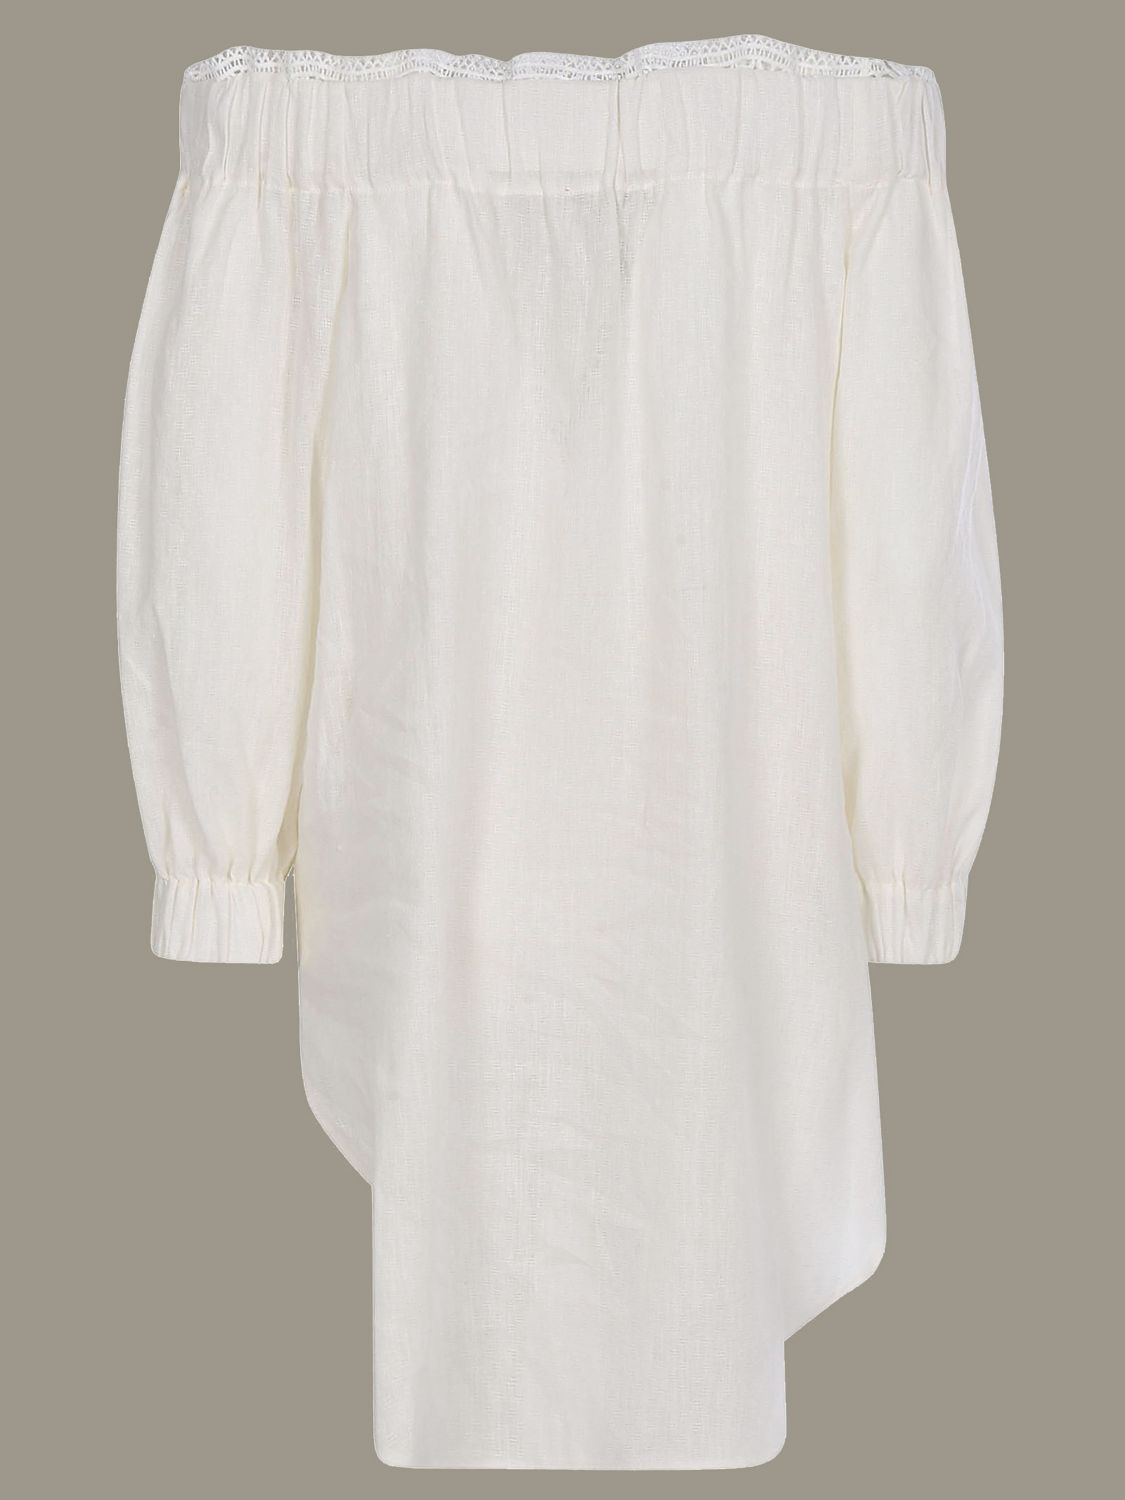 Shirt women Ermanno Scervino Lifestyle white 2